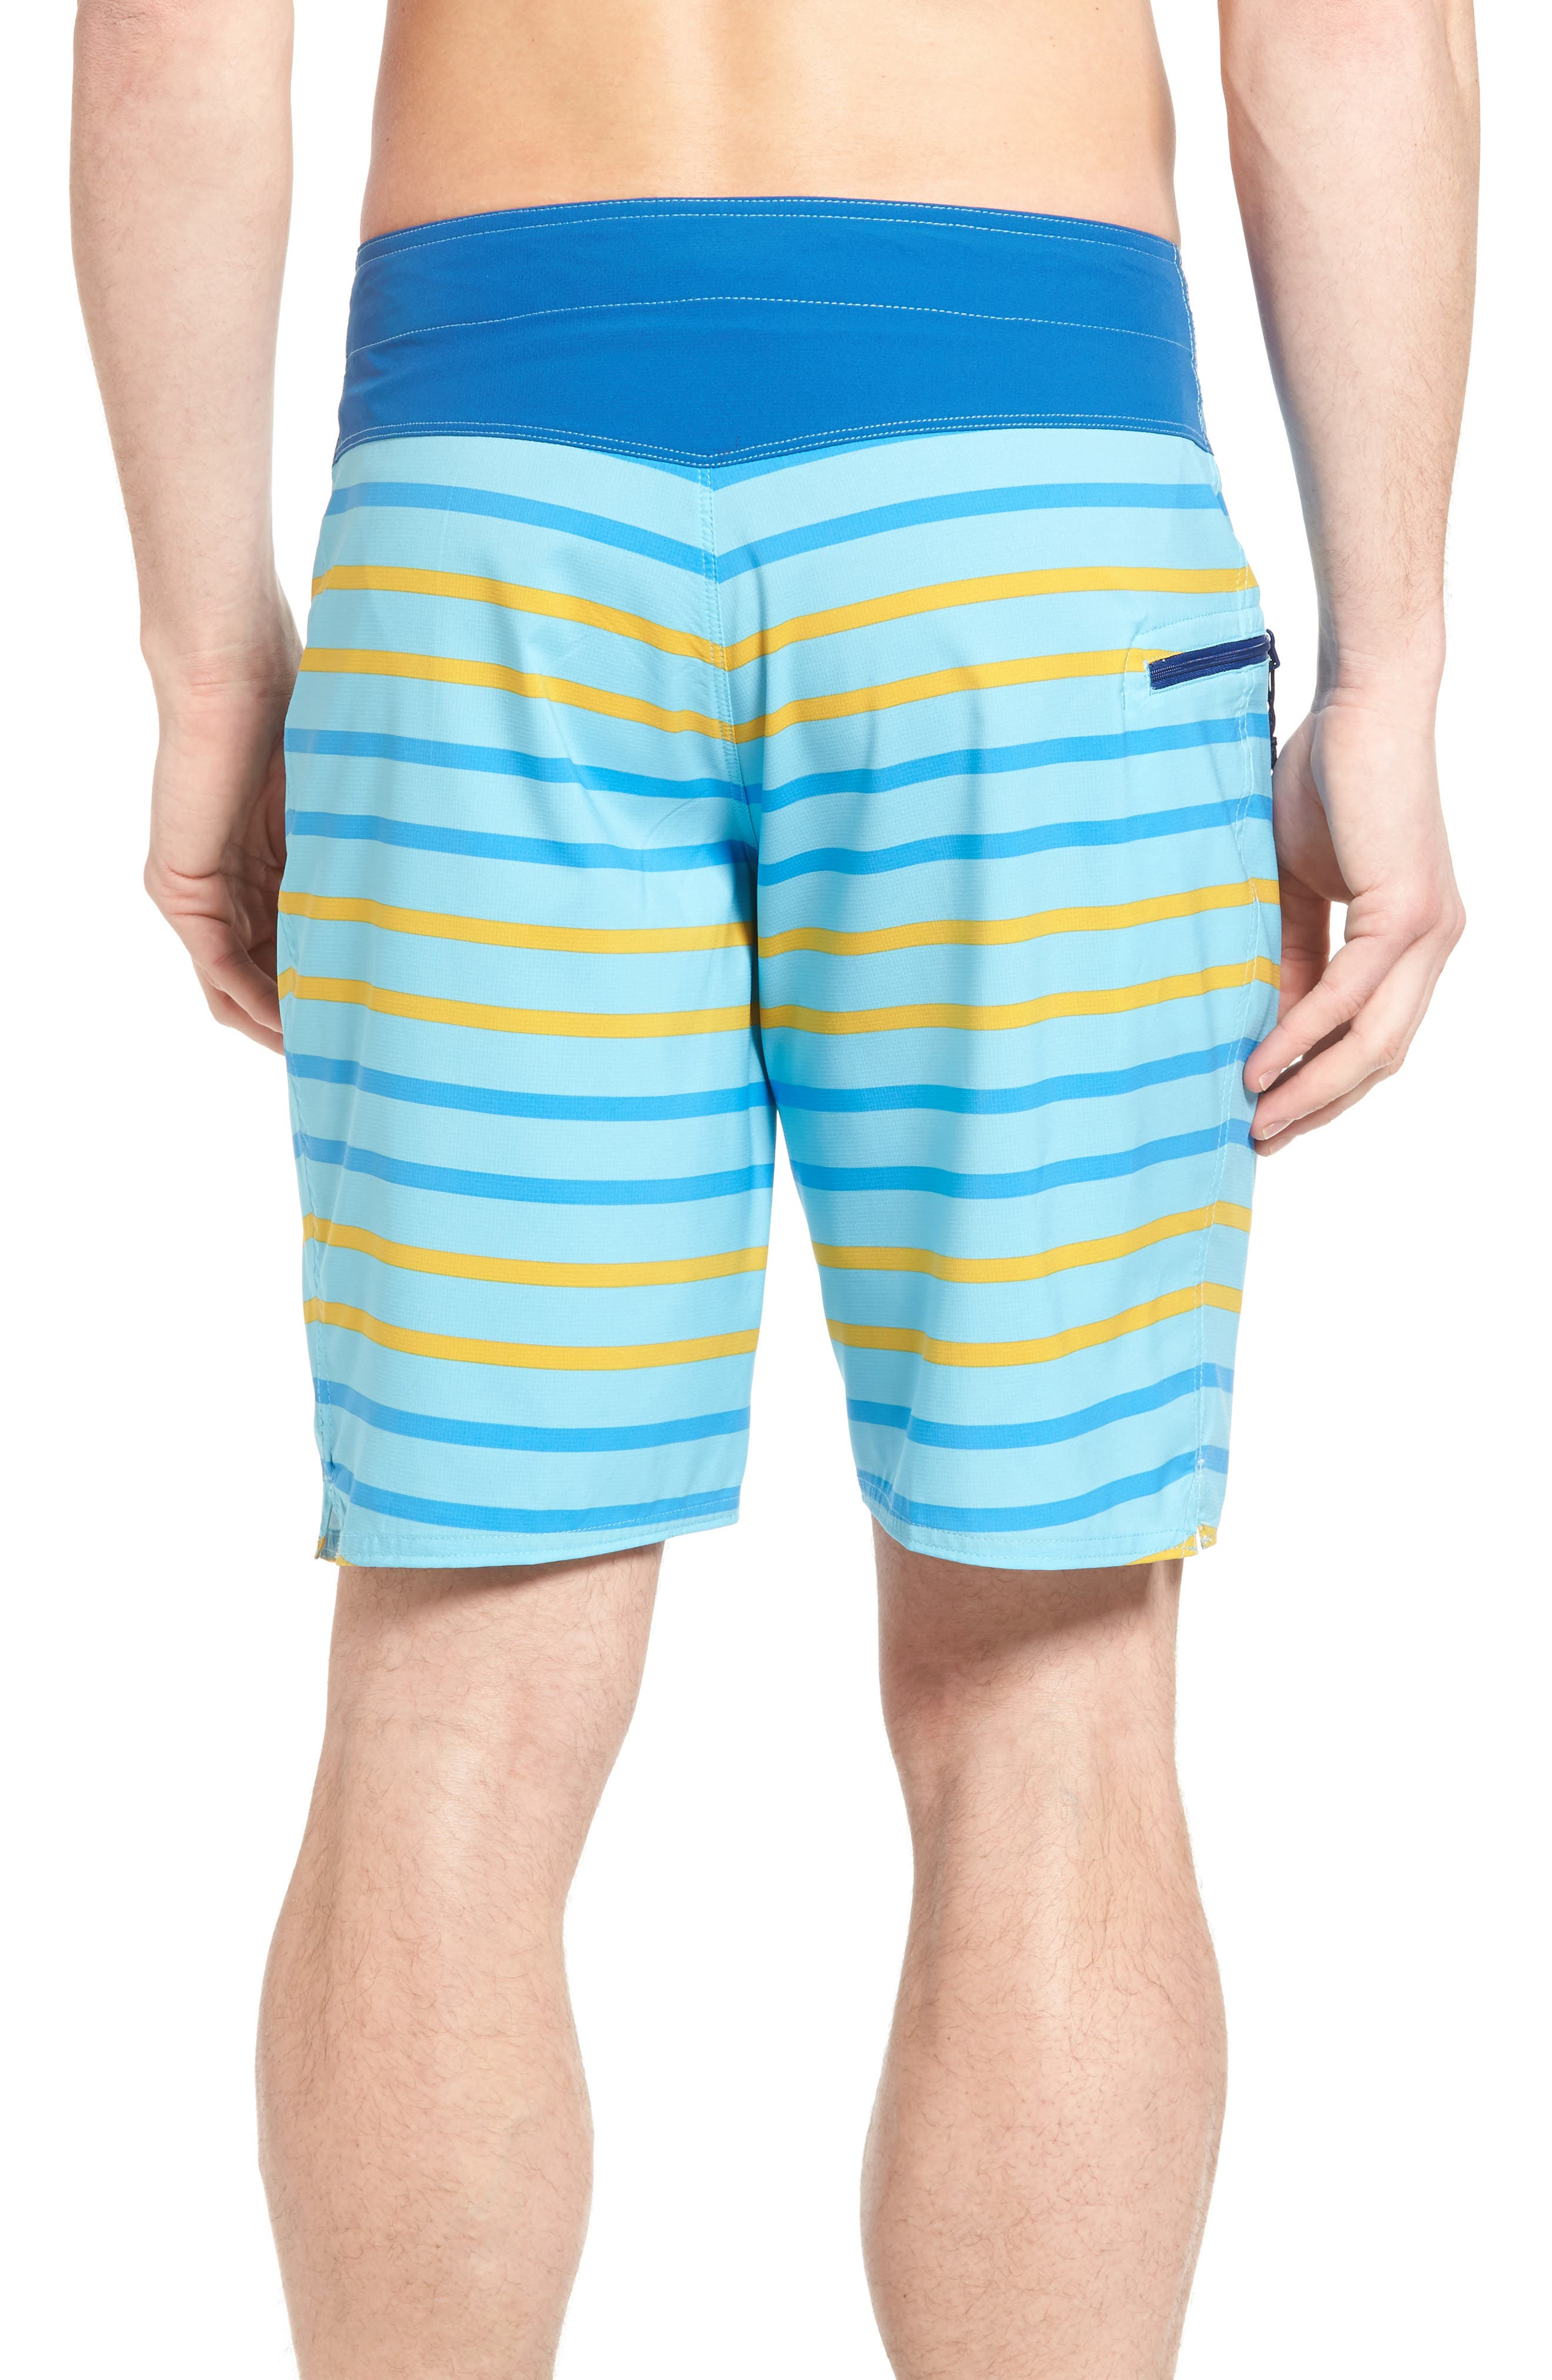 Stretch Planing Board Shorts,                             Alternate thumbnail 11, color,